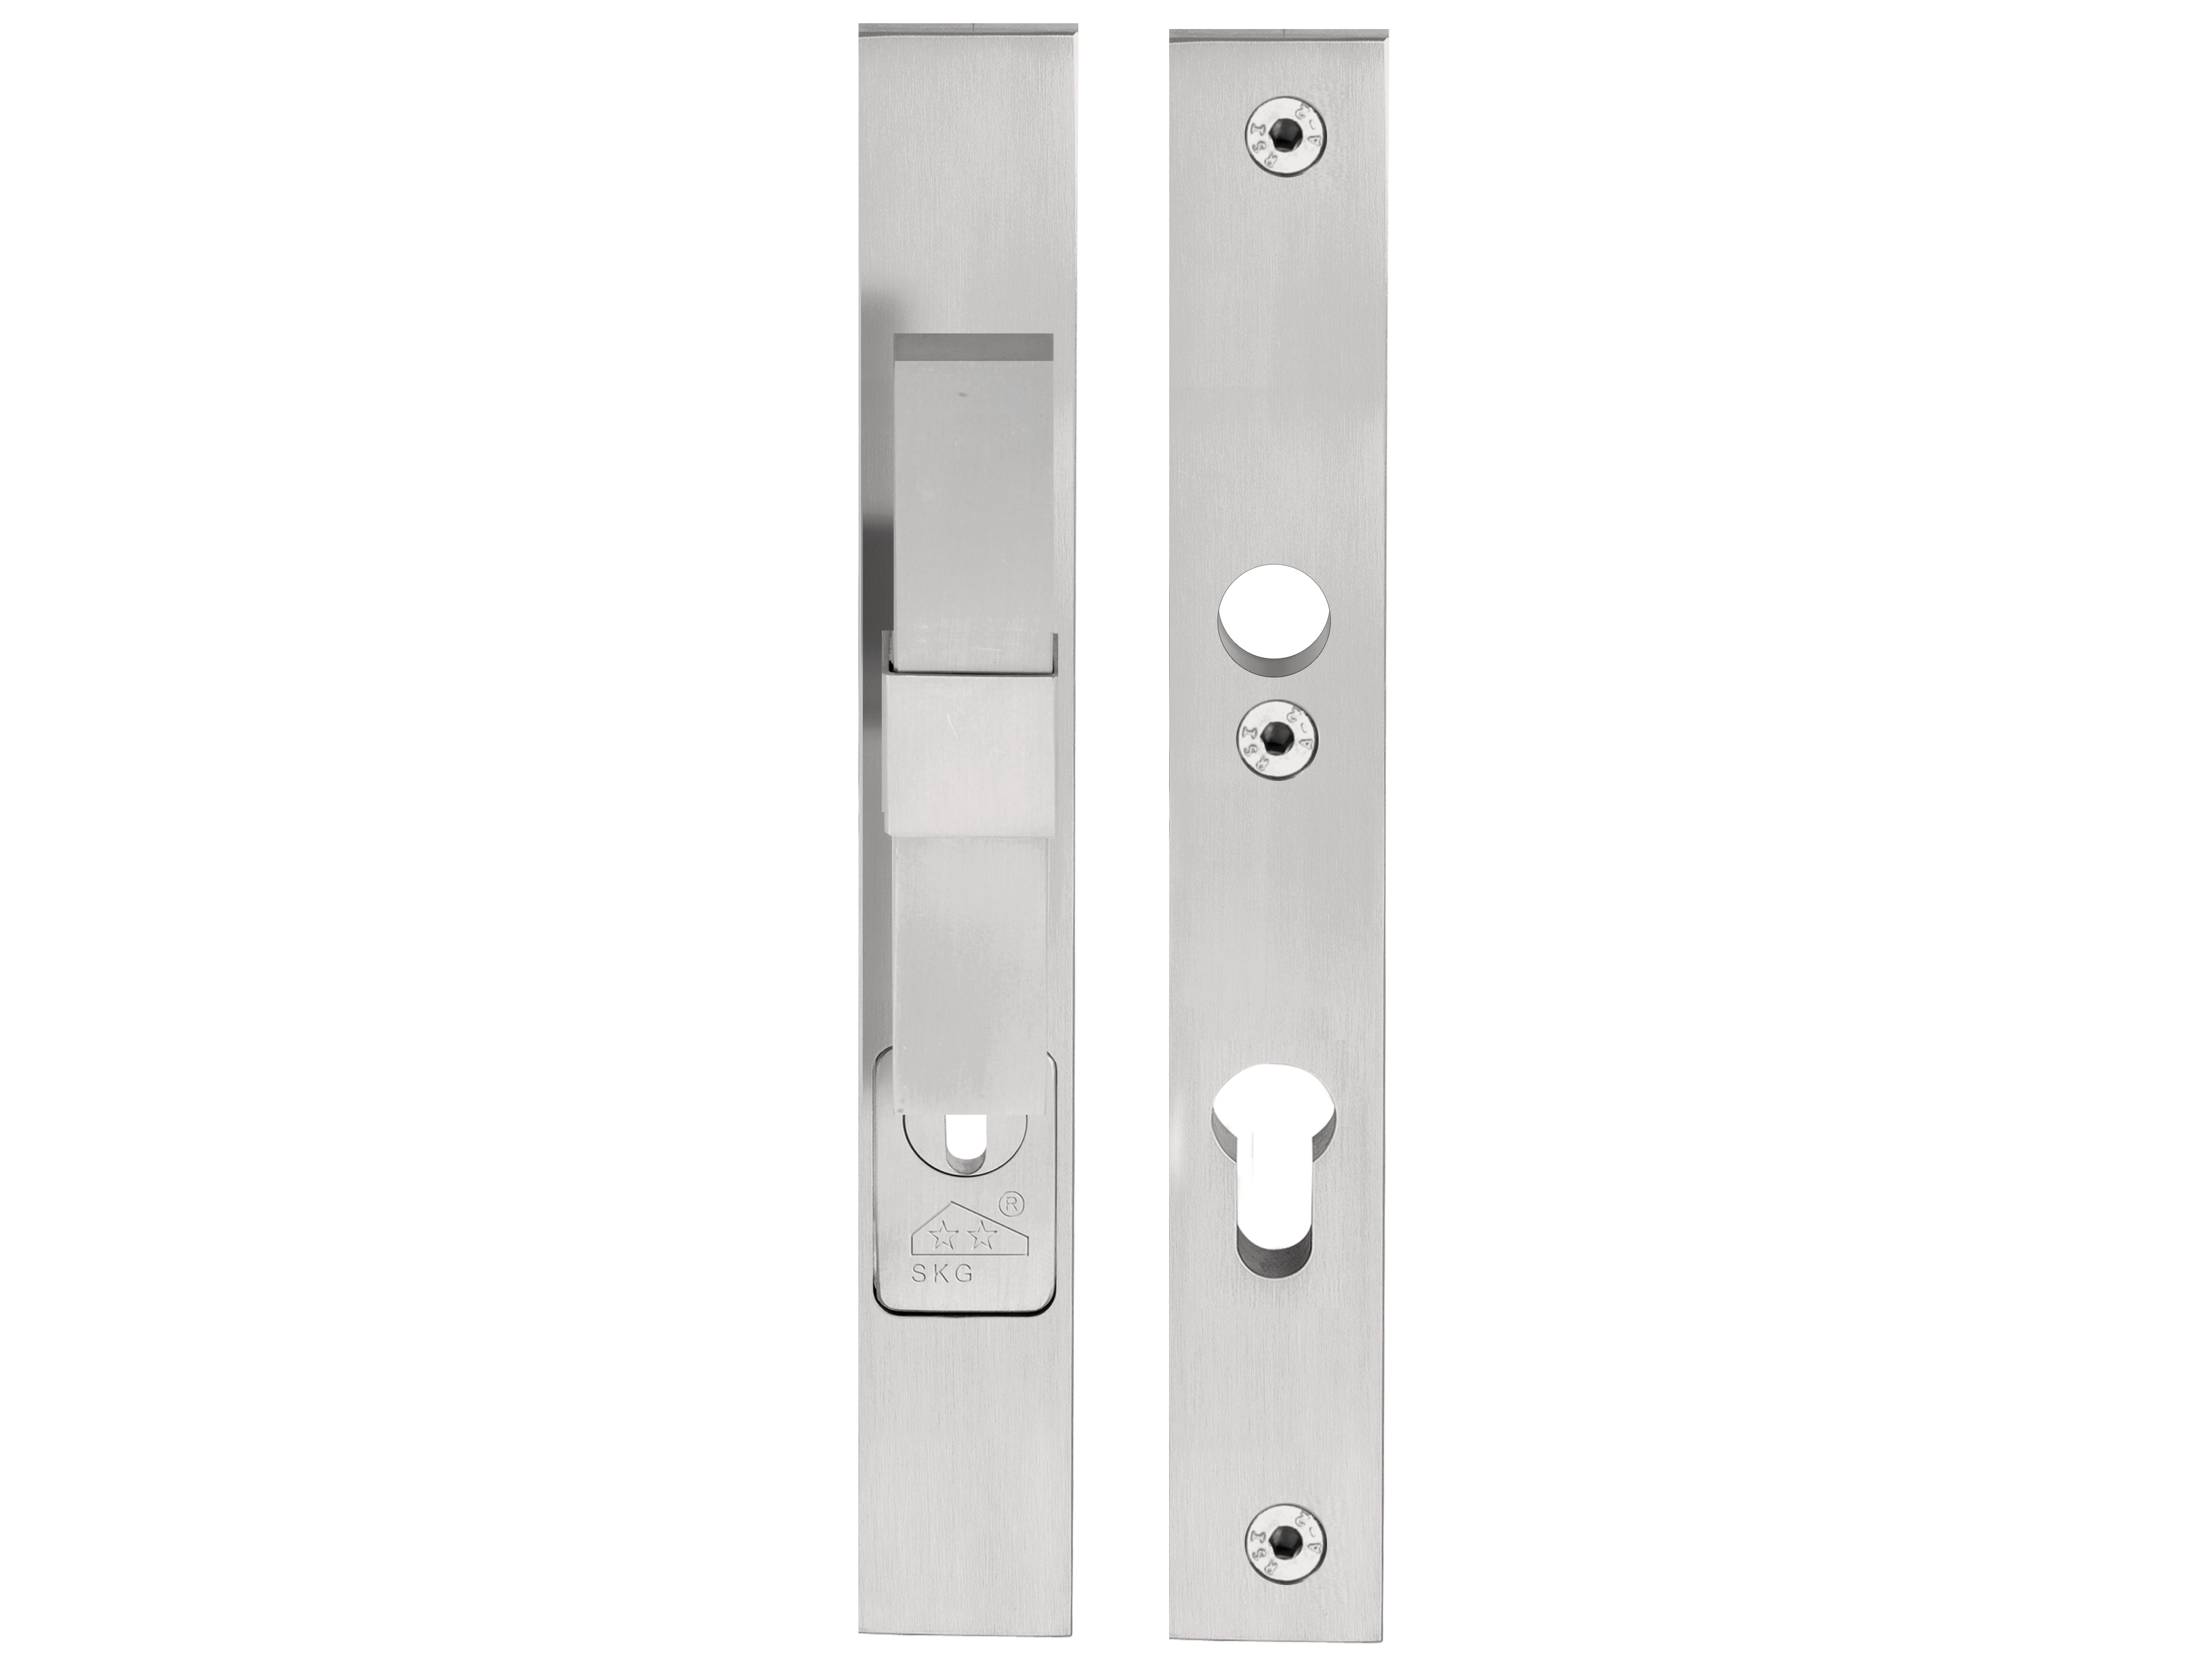 3140 #6B6B60 Stainless Steel Exterior Door Handle On Back Plate VOLUME Exterior  picture/photo Stainless Steel Front Doors 47394187